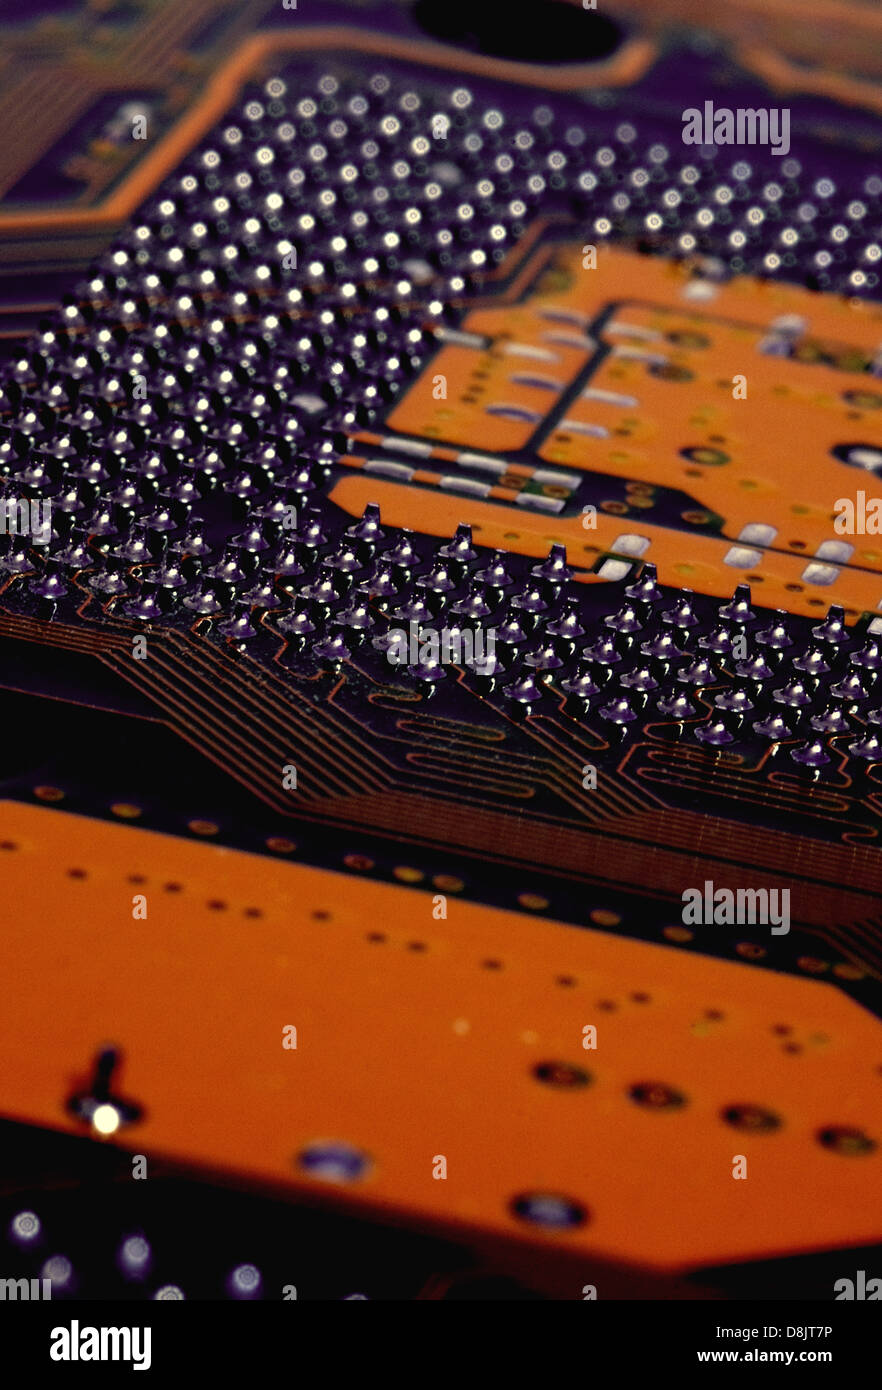 Orange Populated Printed Circuit Board Pcb Showing The Conductive